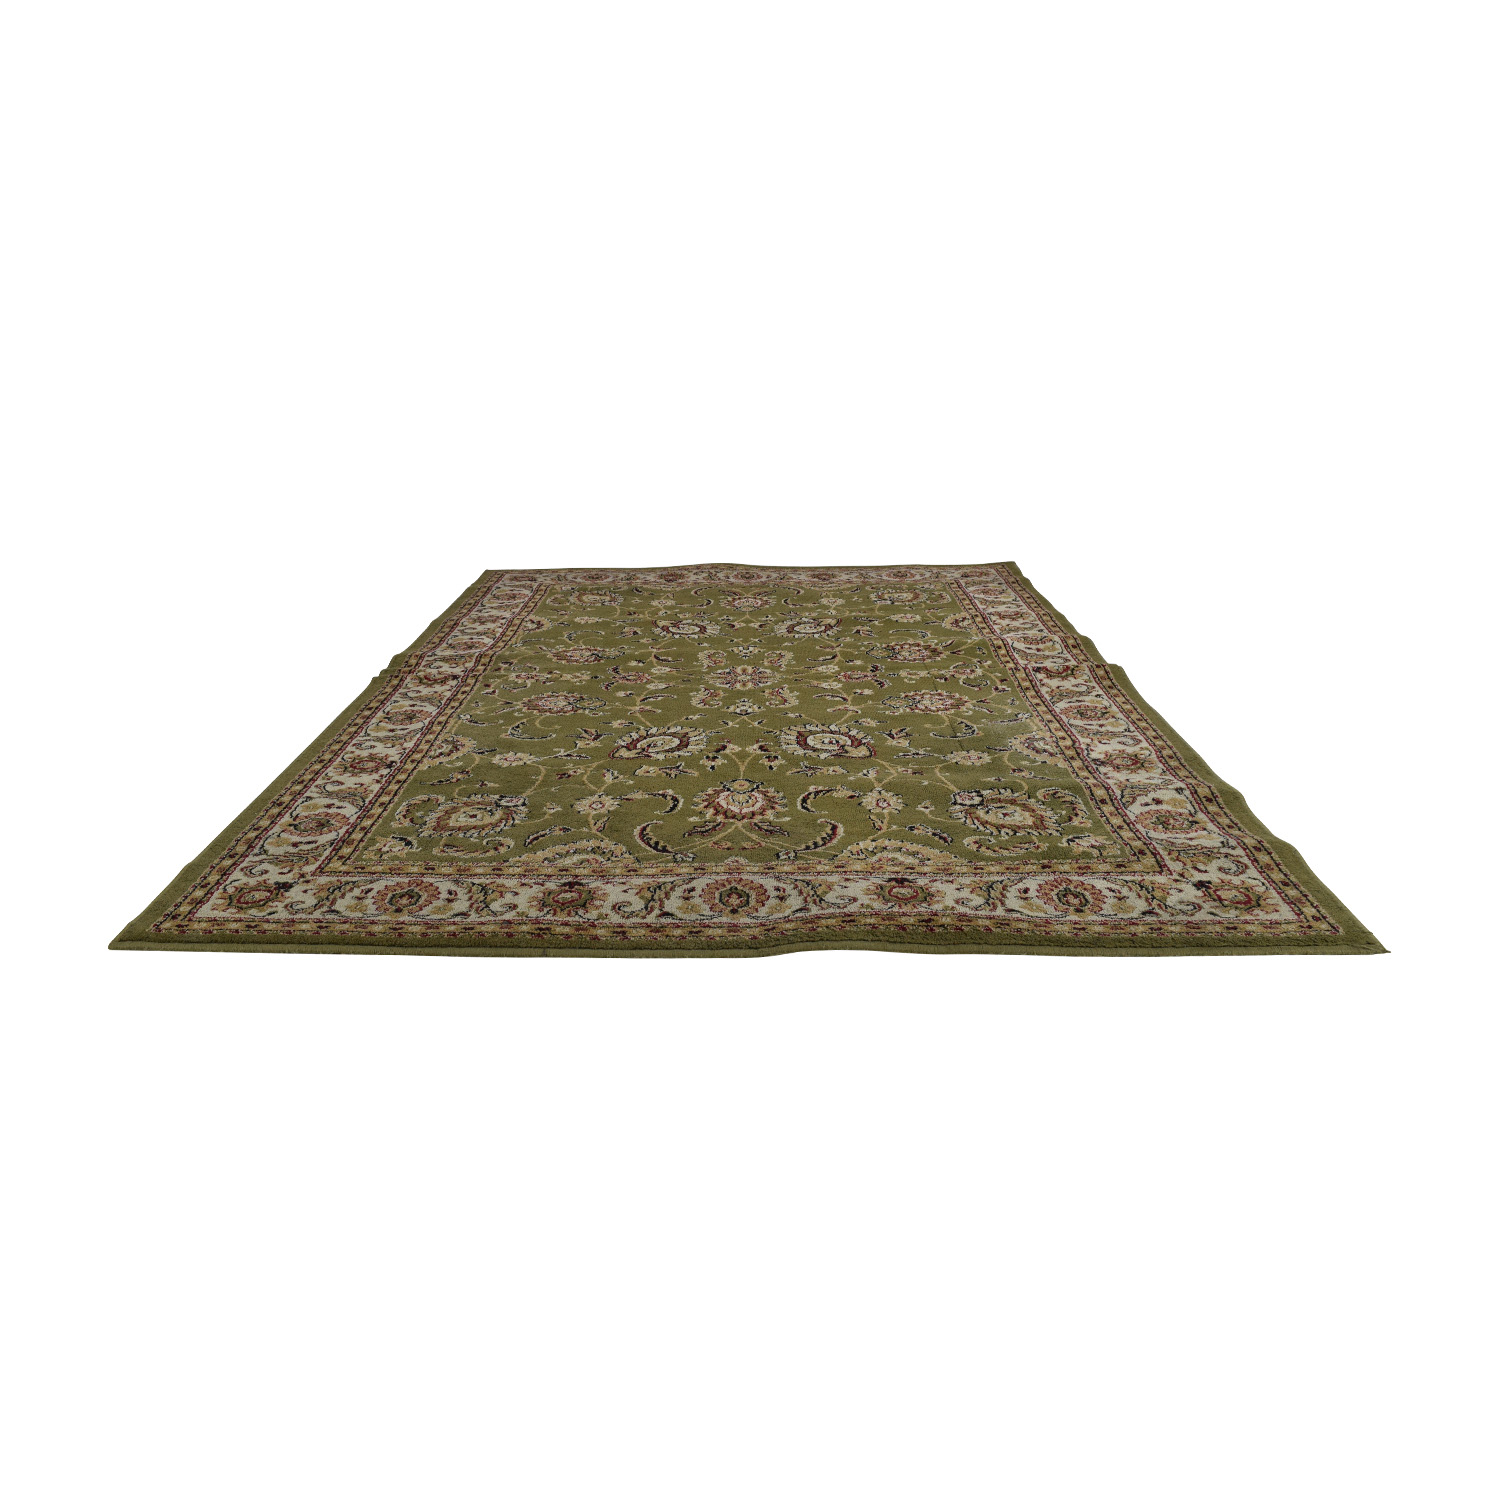 69 Off Safavieh Safavieh Area Rug Decor